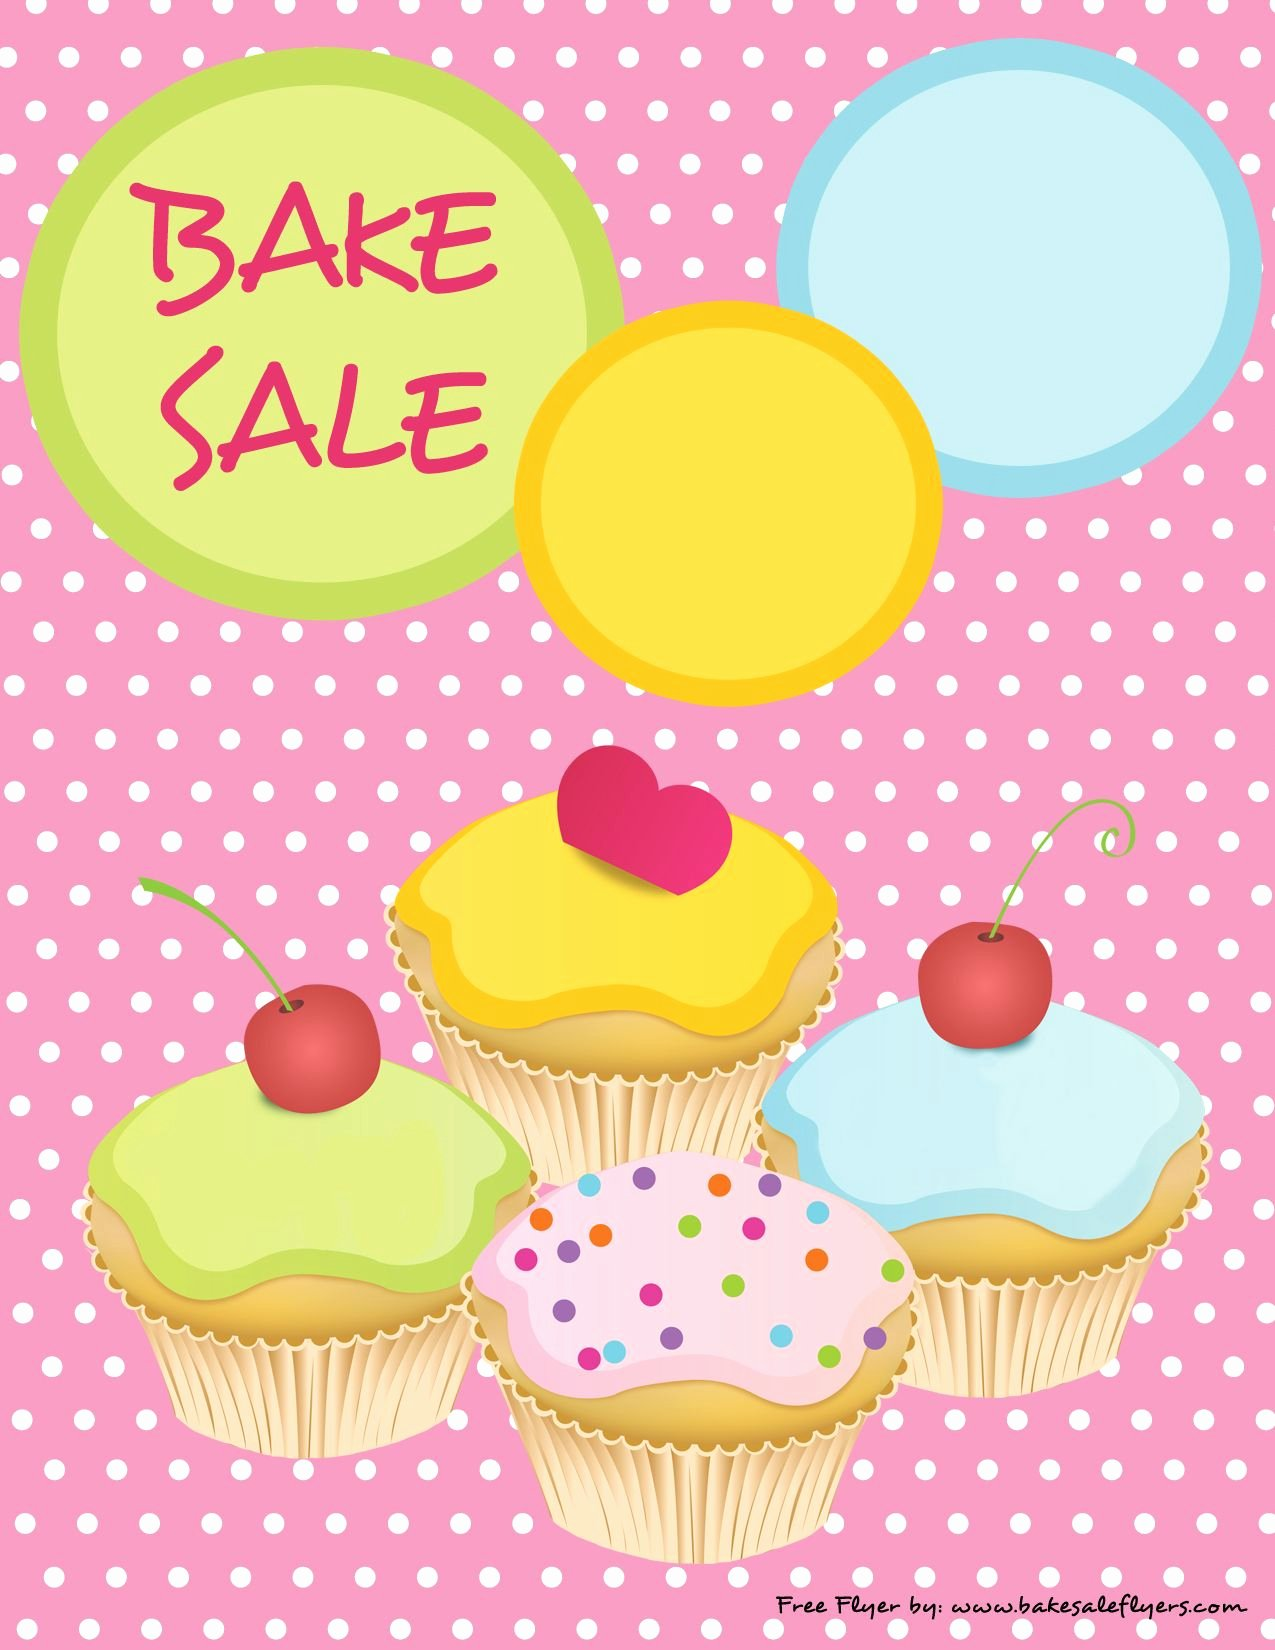 Bake Sale Flyer Template Free Inspirational Free Bake Sale Flyer Template 1 275×1 650 Pixels